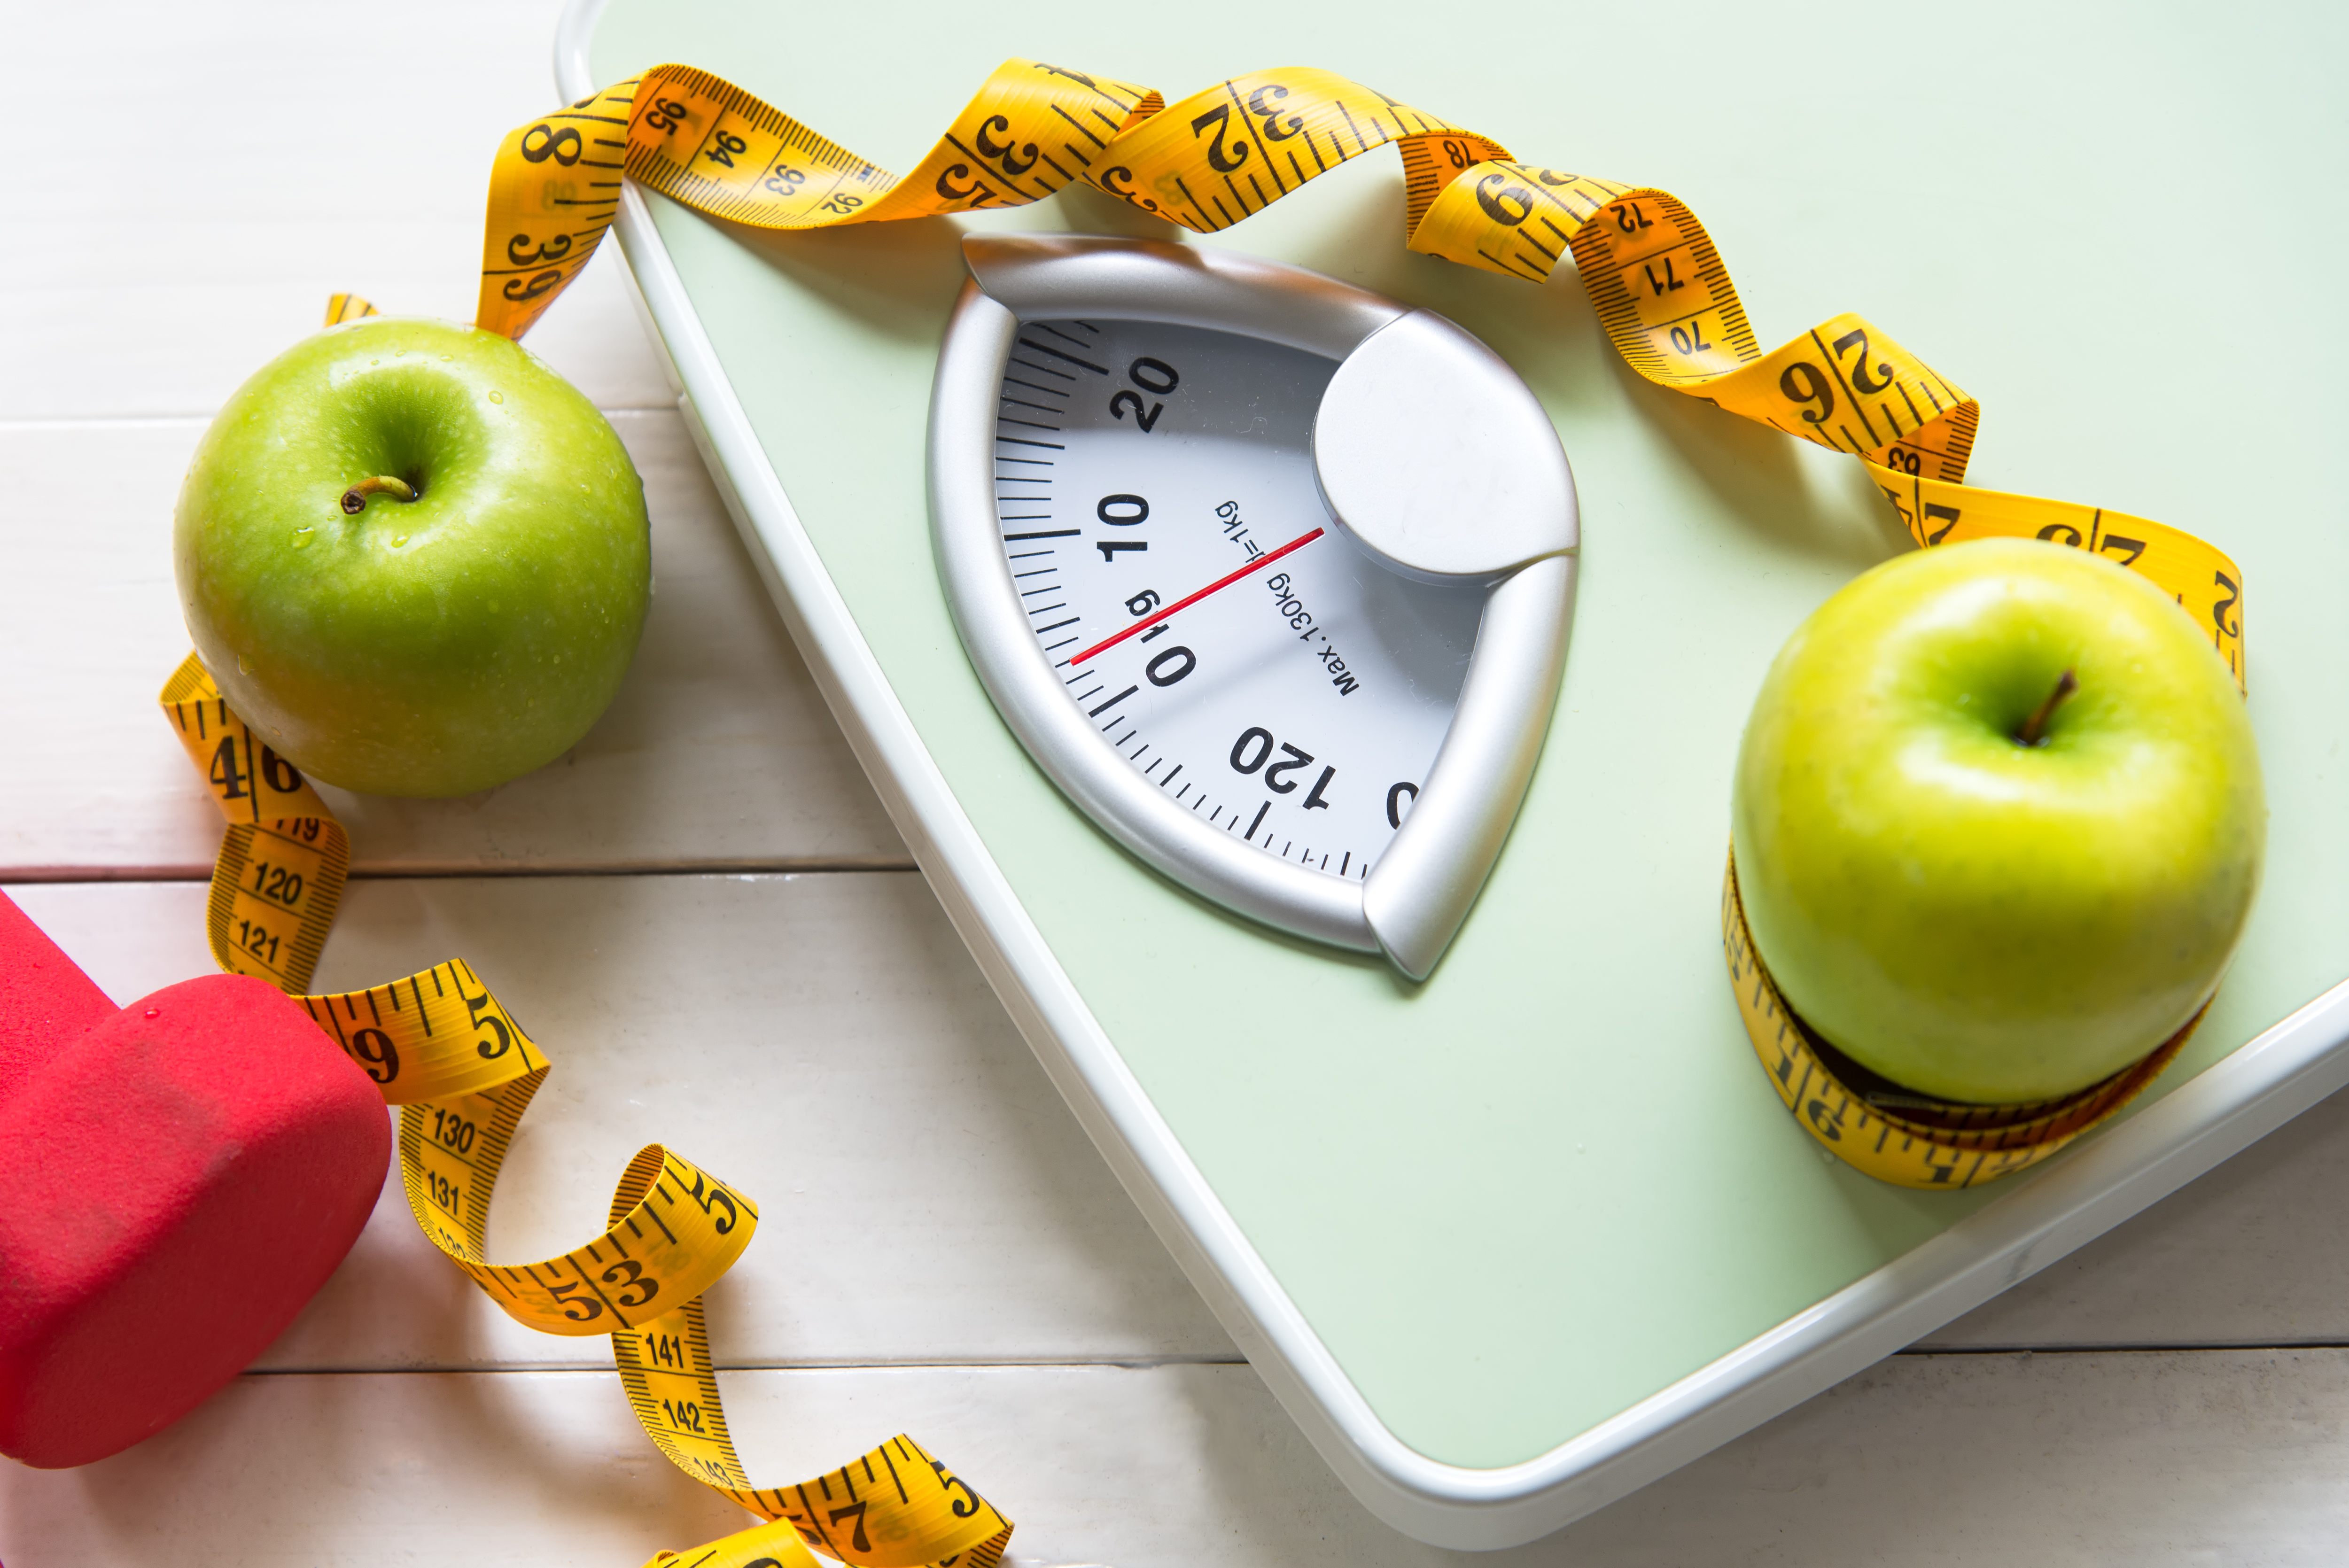 is apple bad for diet